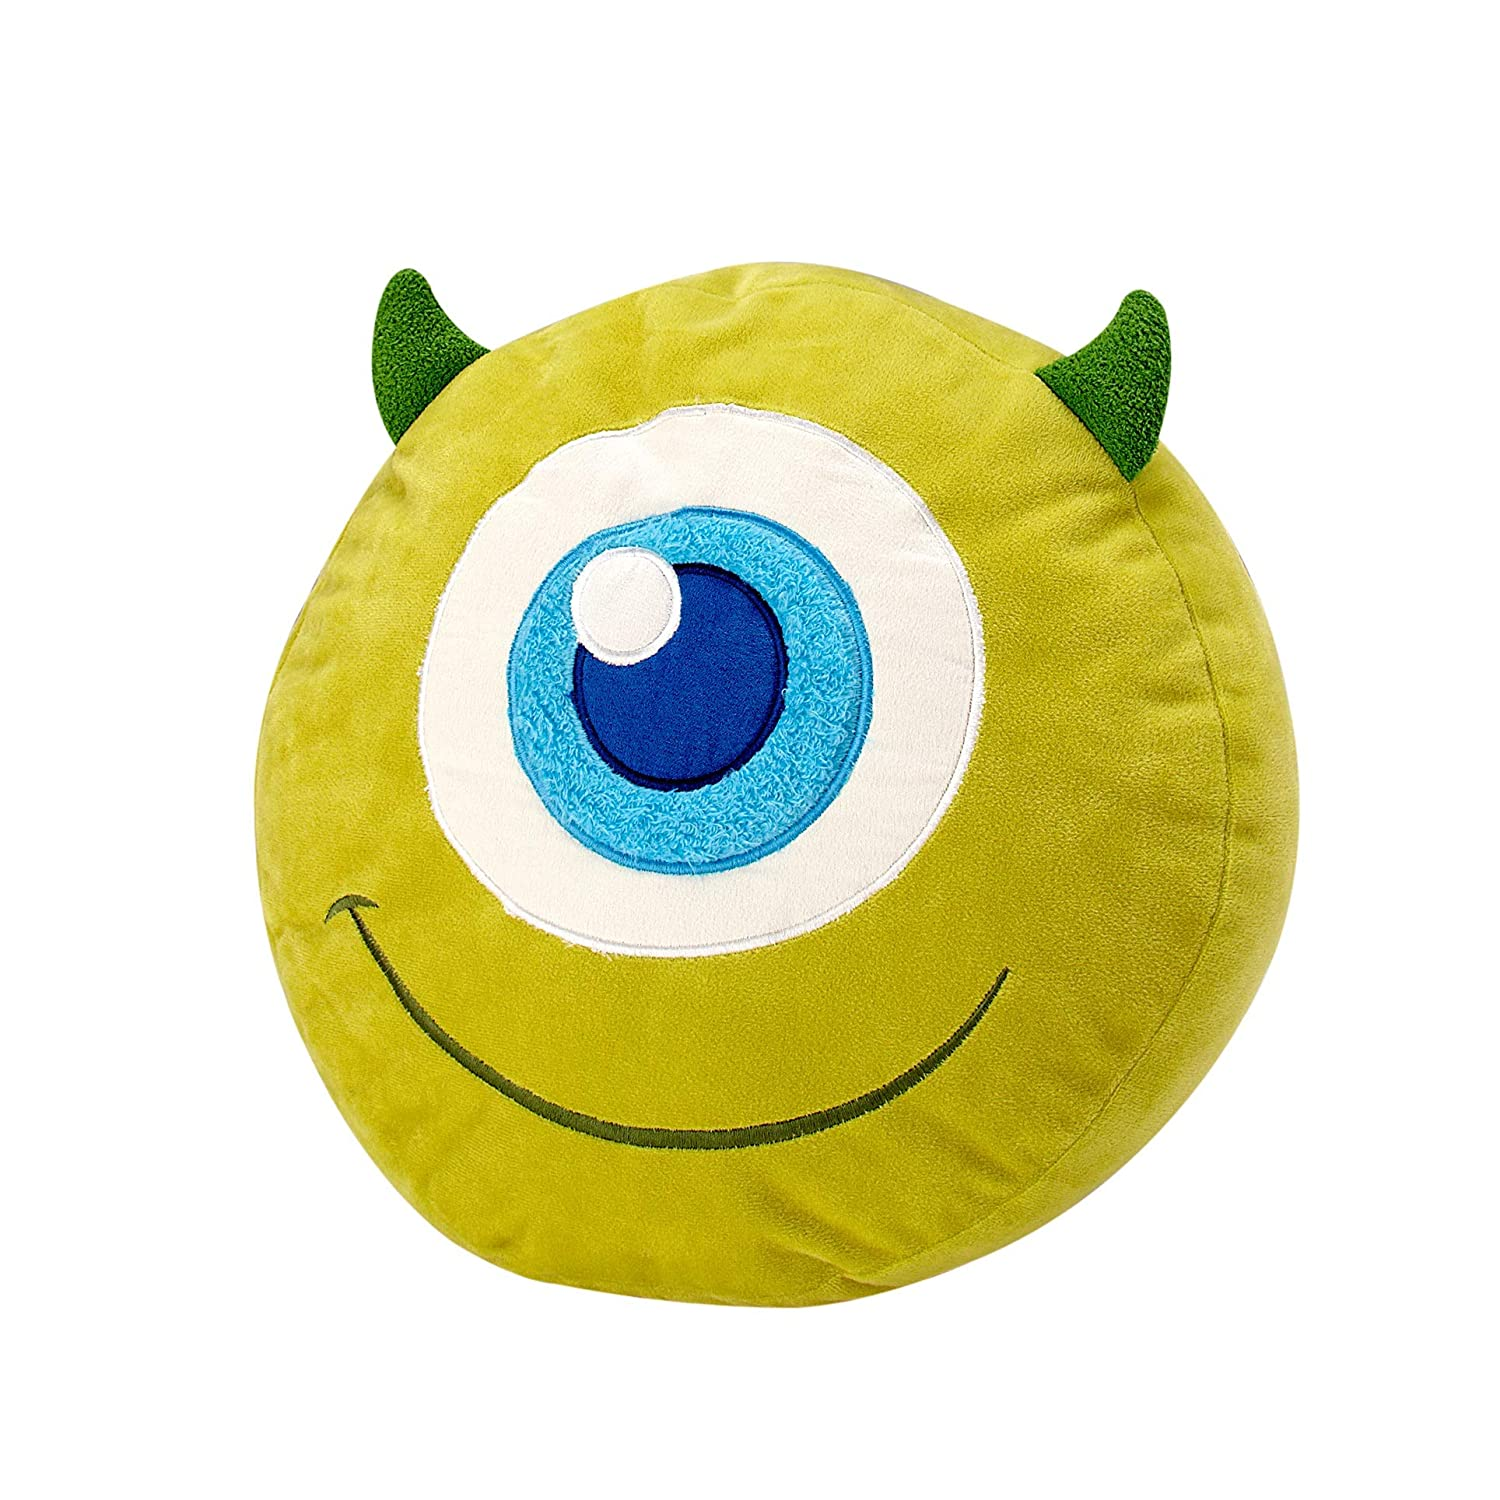 Disney Monster's Inc. Mike Wazowski Round Decorative Pillow, Green/Green/Blue/White